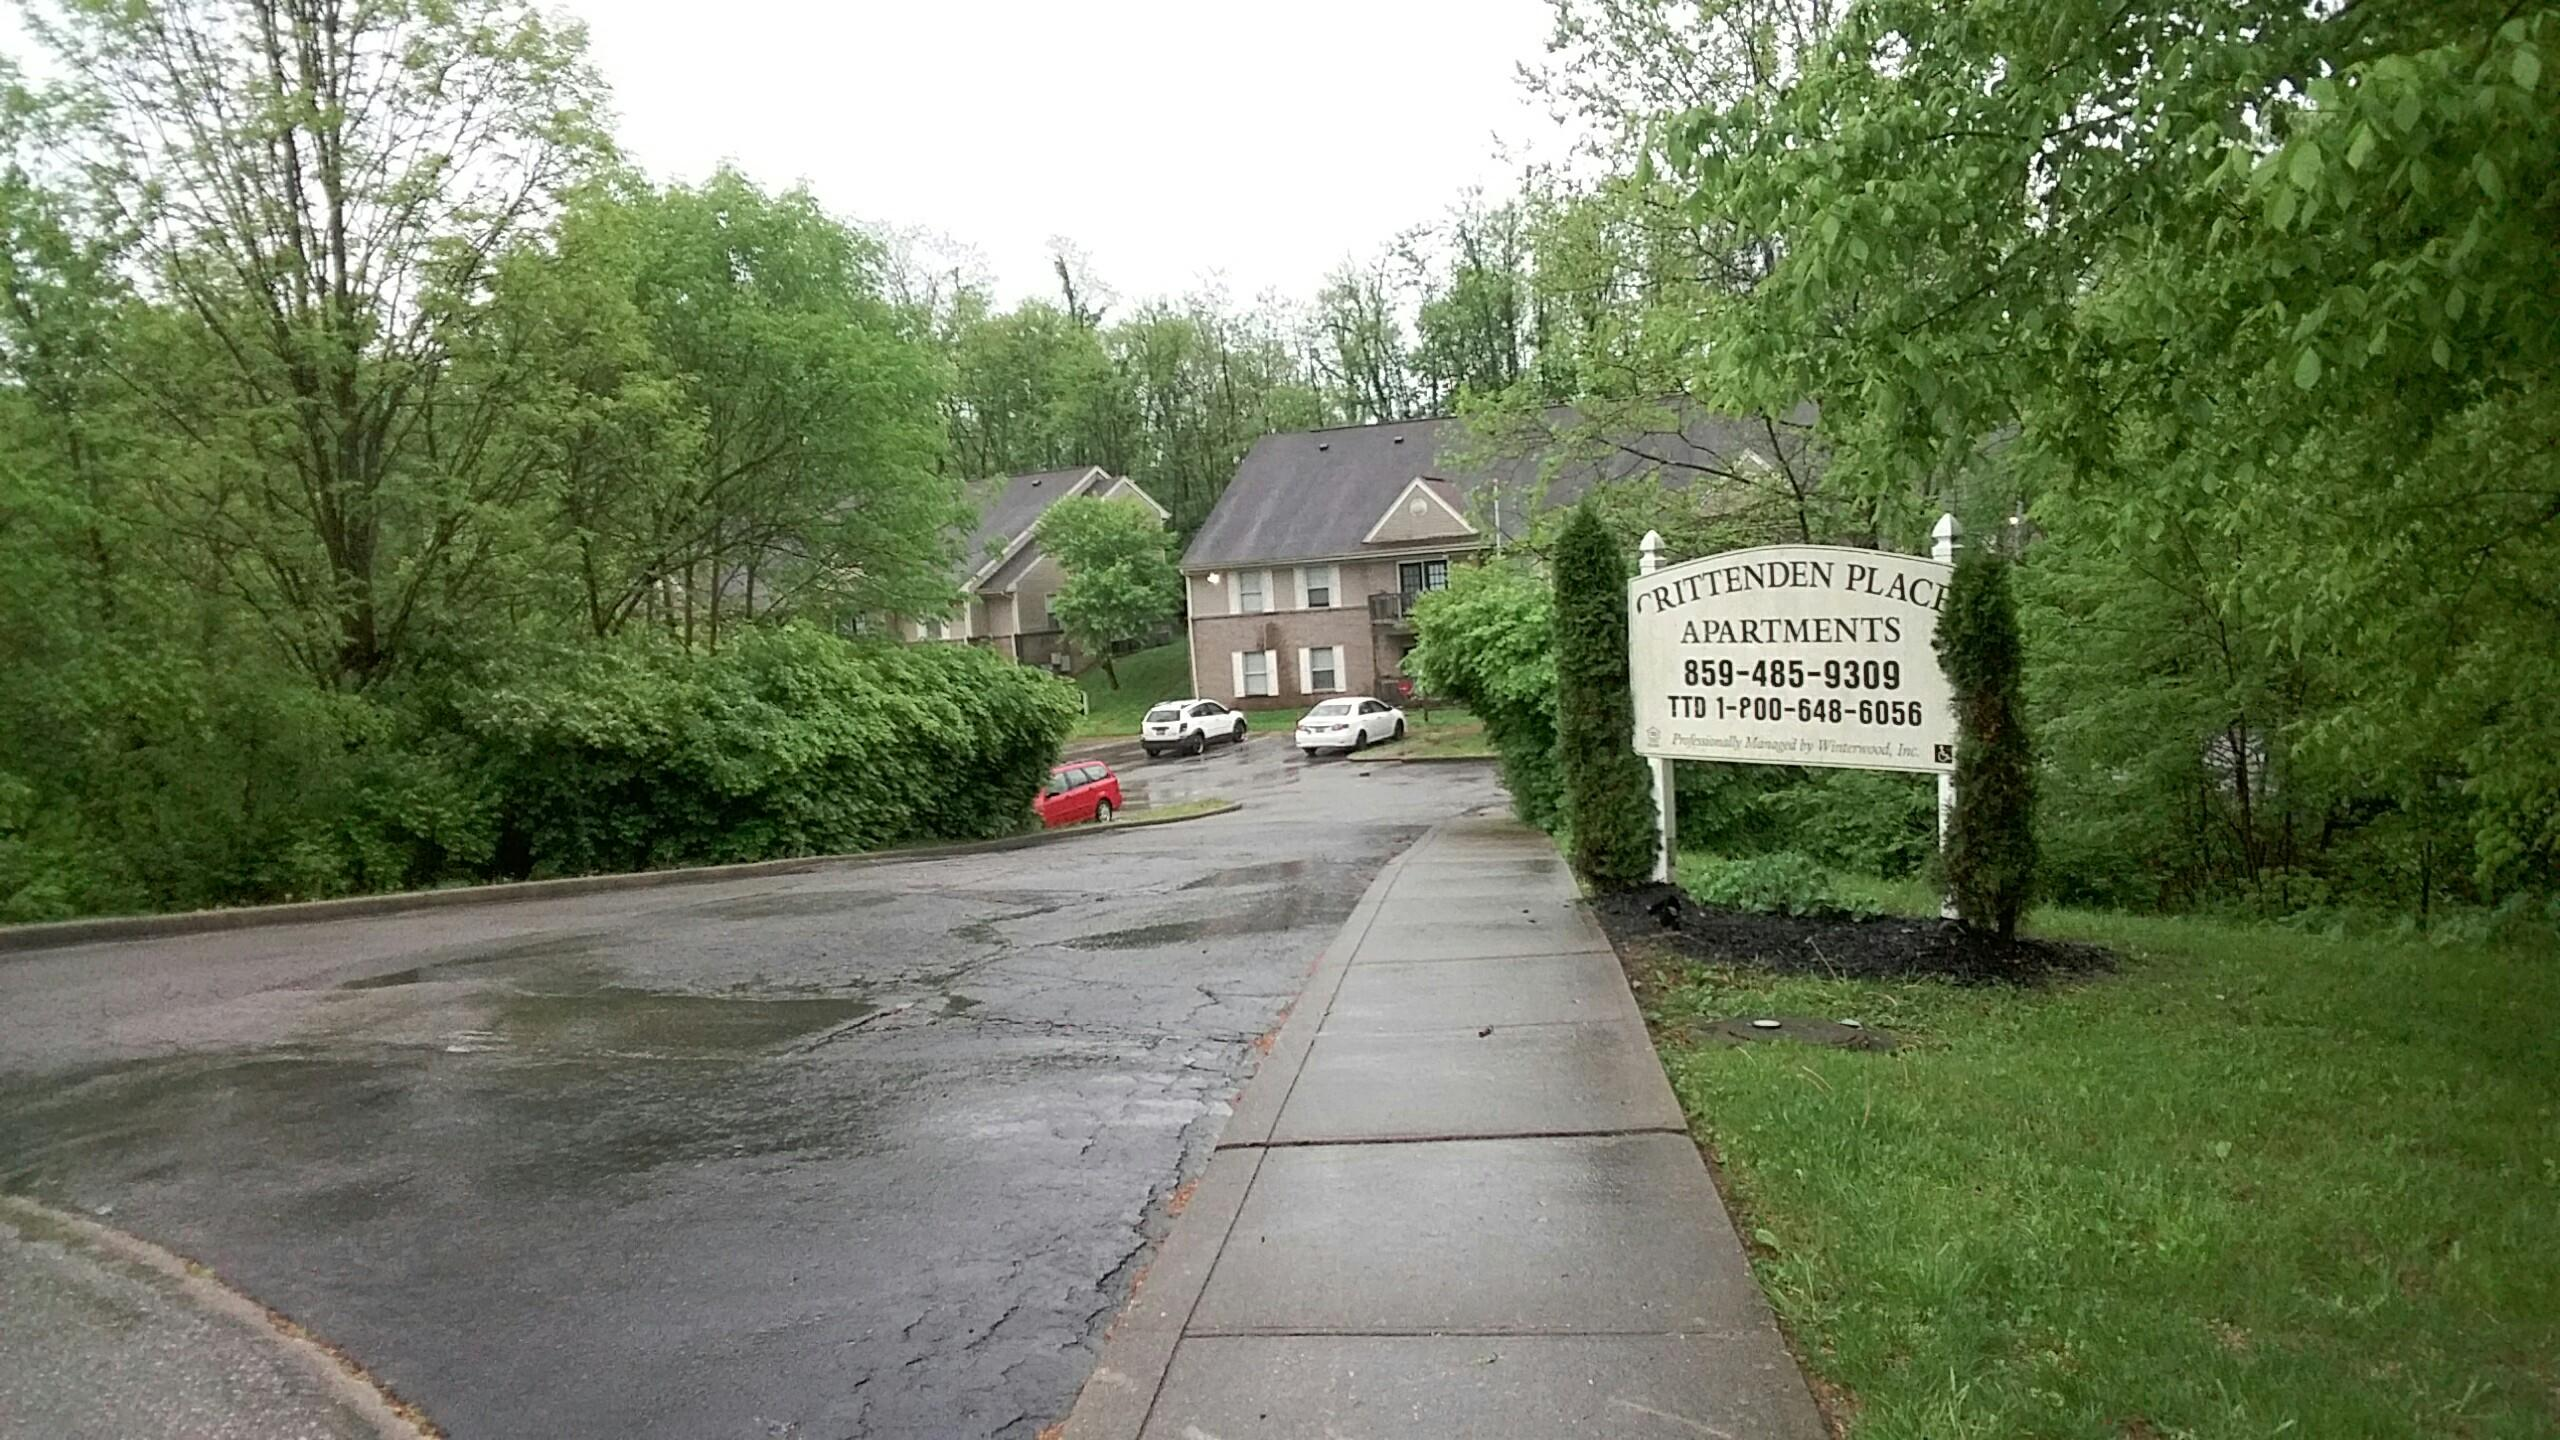 Image of Crittenden Place Apartments in Crittenden, Kentucky